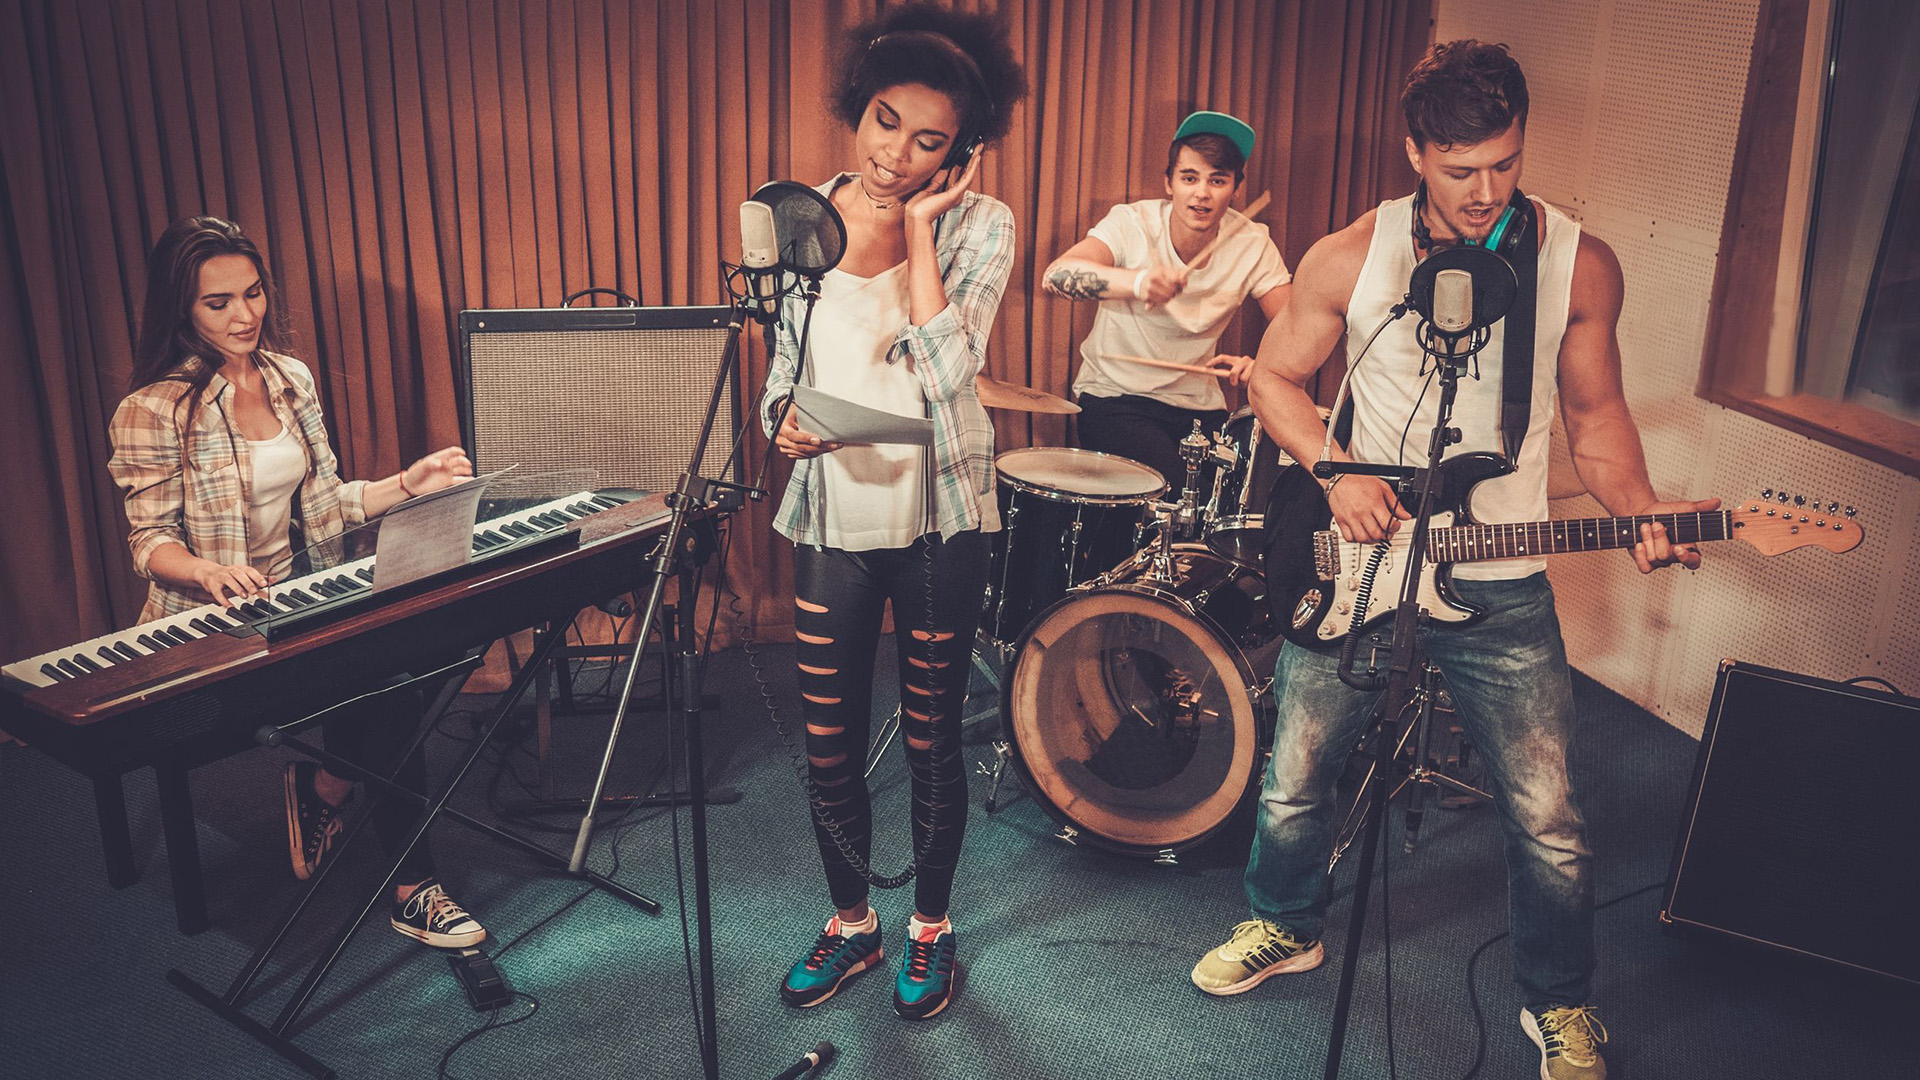 young band playing music with instruments and being recorded